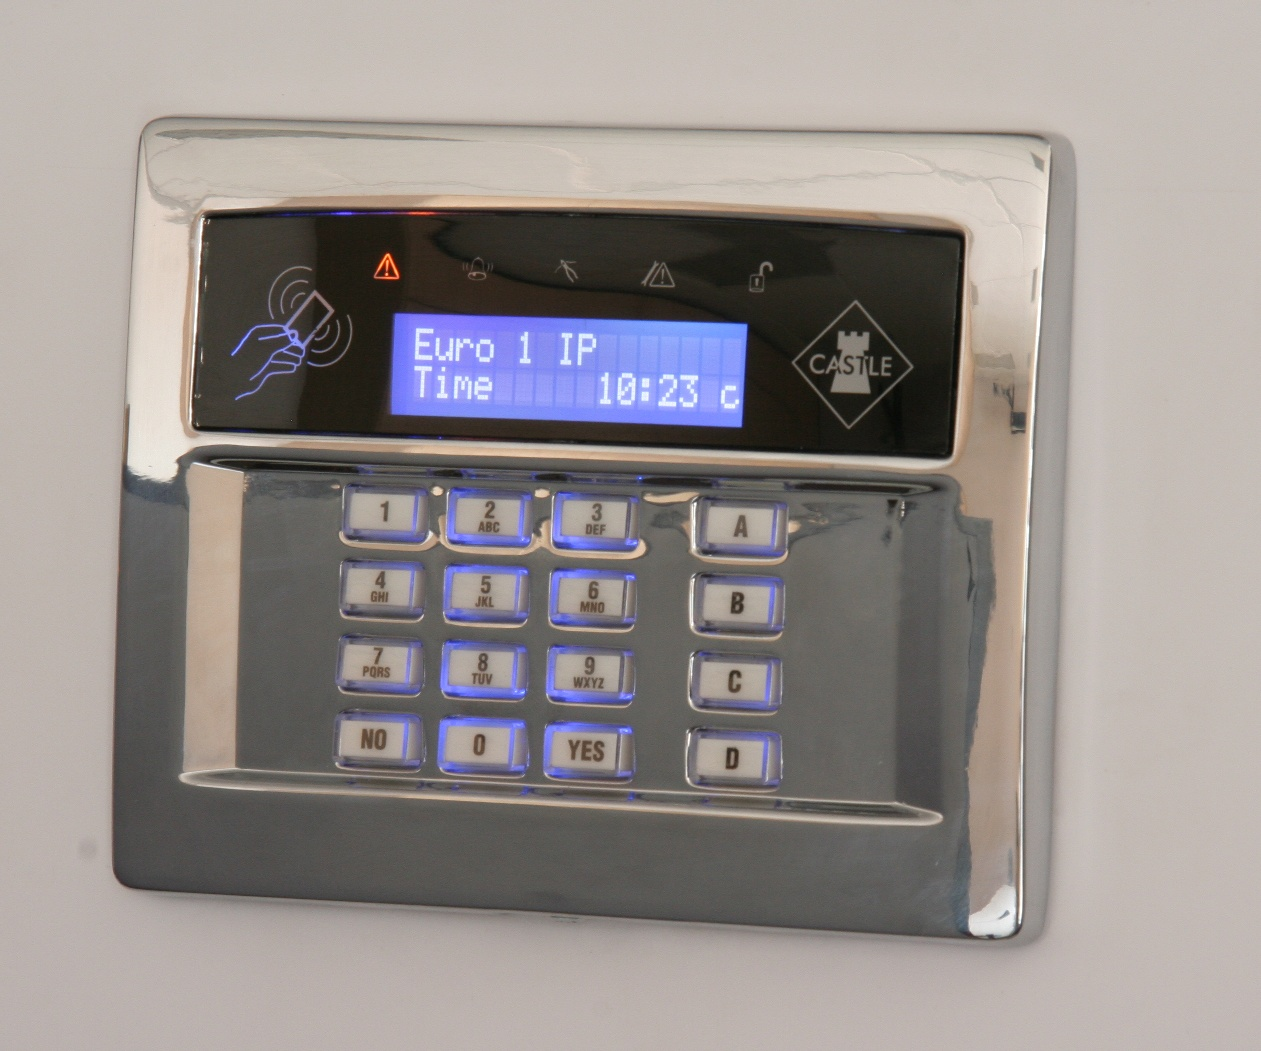 flush castle lcd keypads compatible with all euro panels